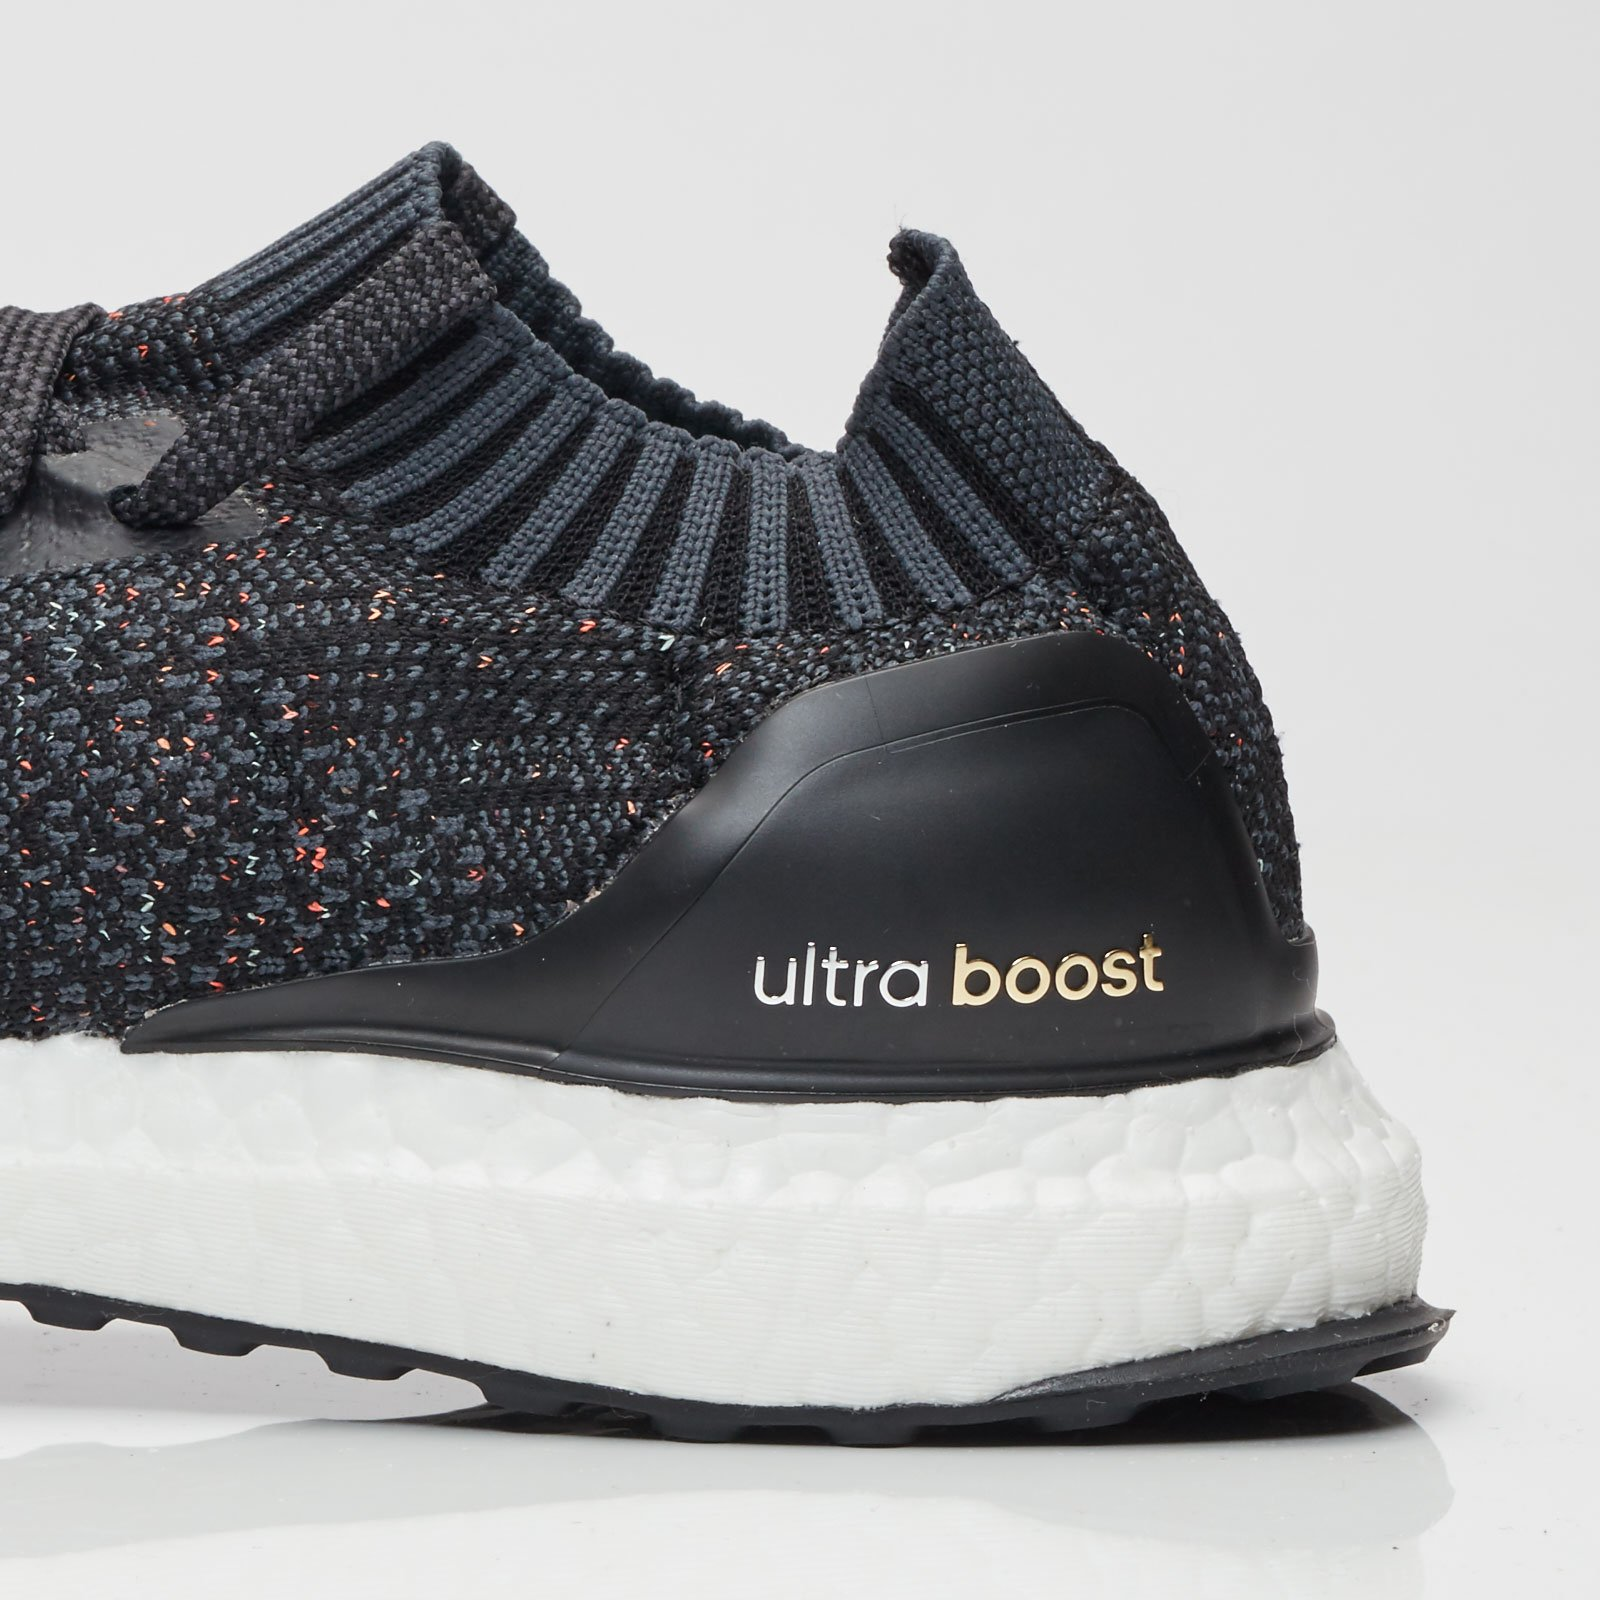 huge selection of 35d48 786e6 adidas Ultra Boost Uncaged - Ba9796 - Sneakersnstuff ...